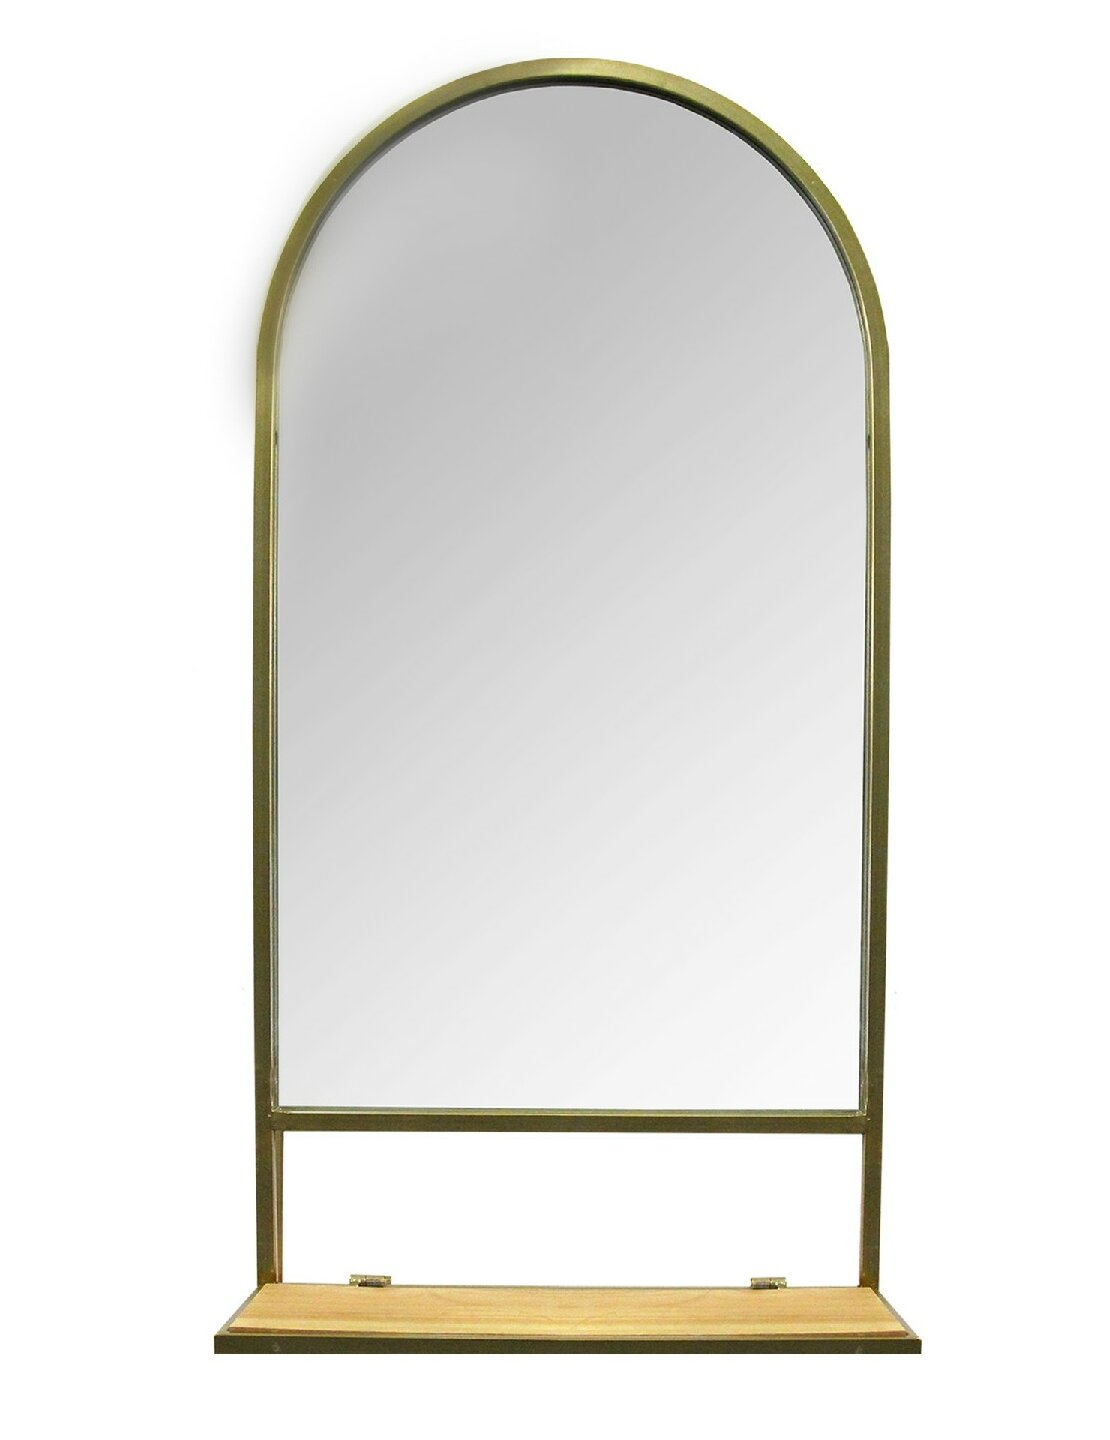 Leroux Modern With Shelves Accent Mirror with Minerva Accent Mirrors (Image 14 of 30)